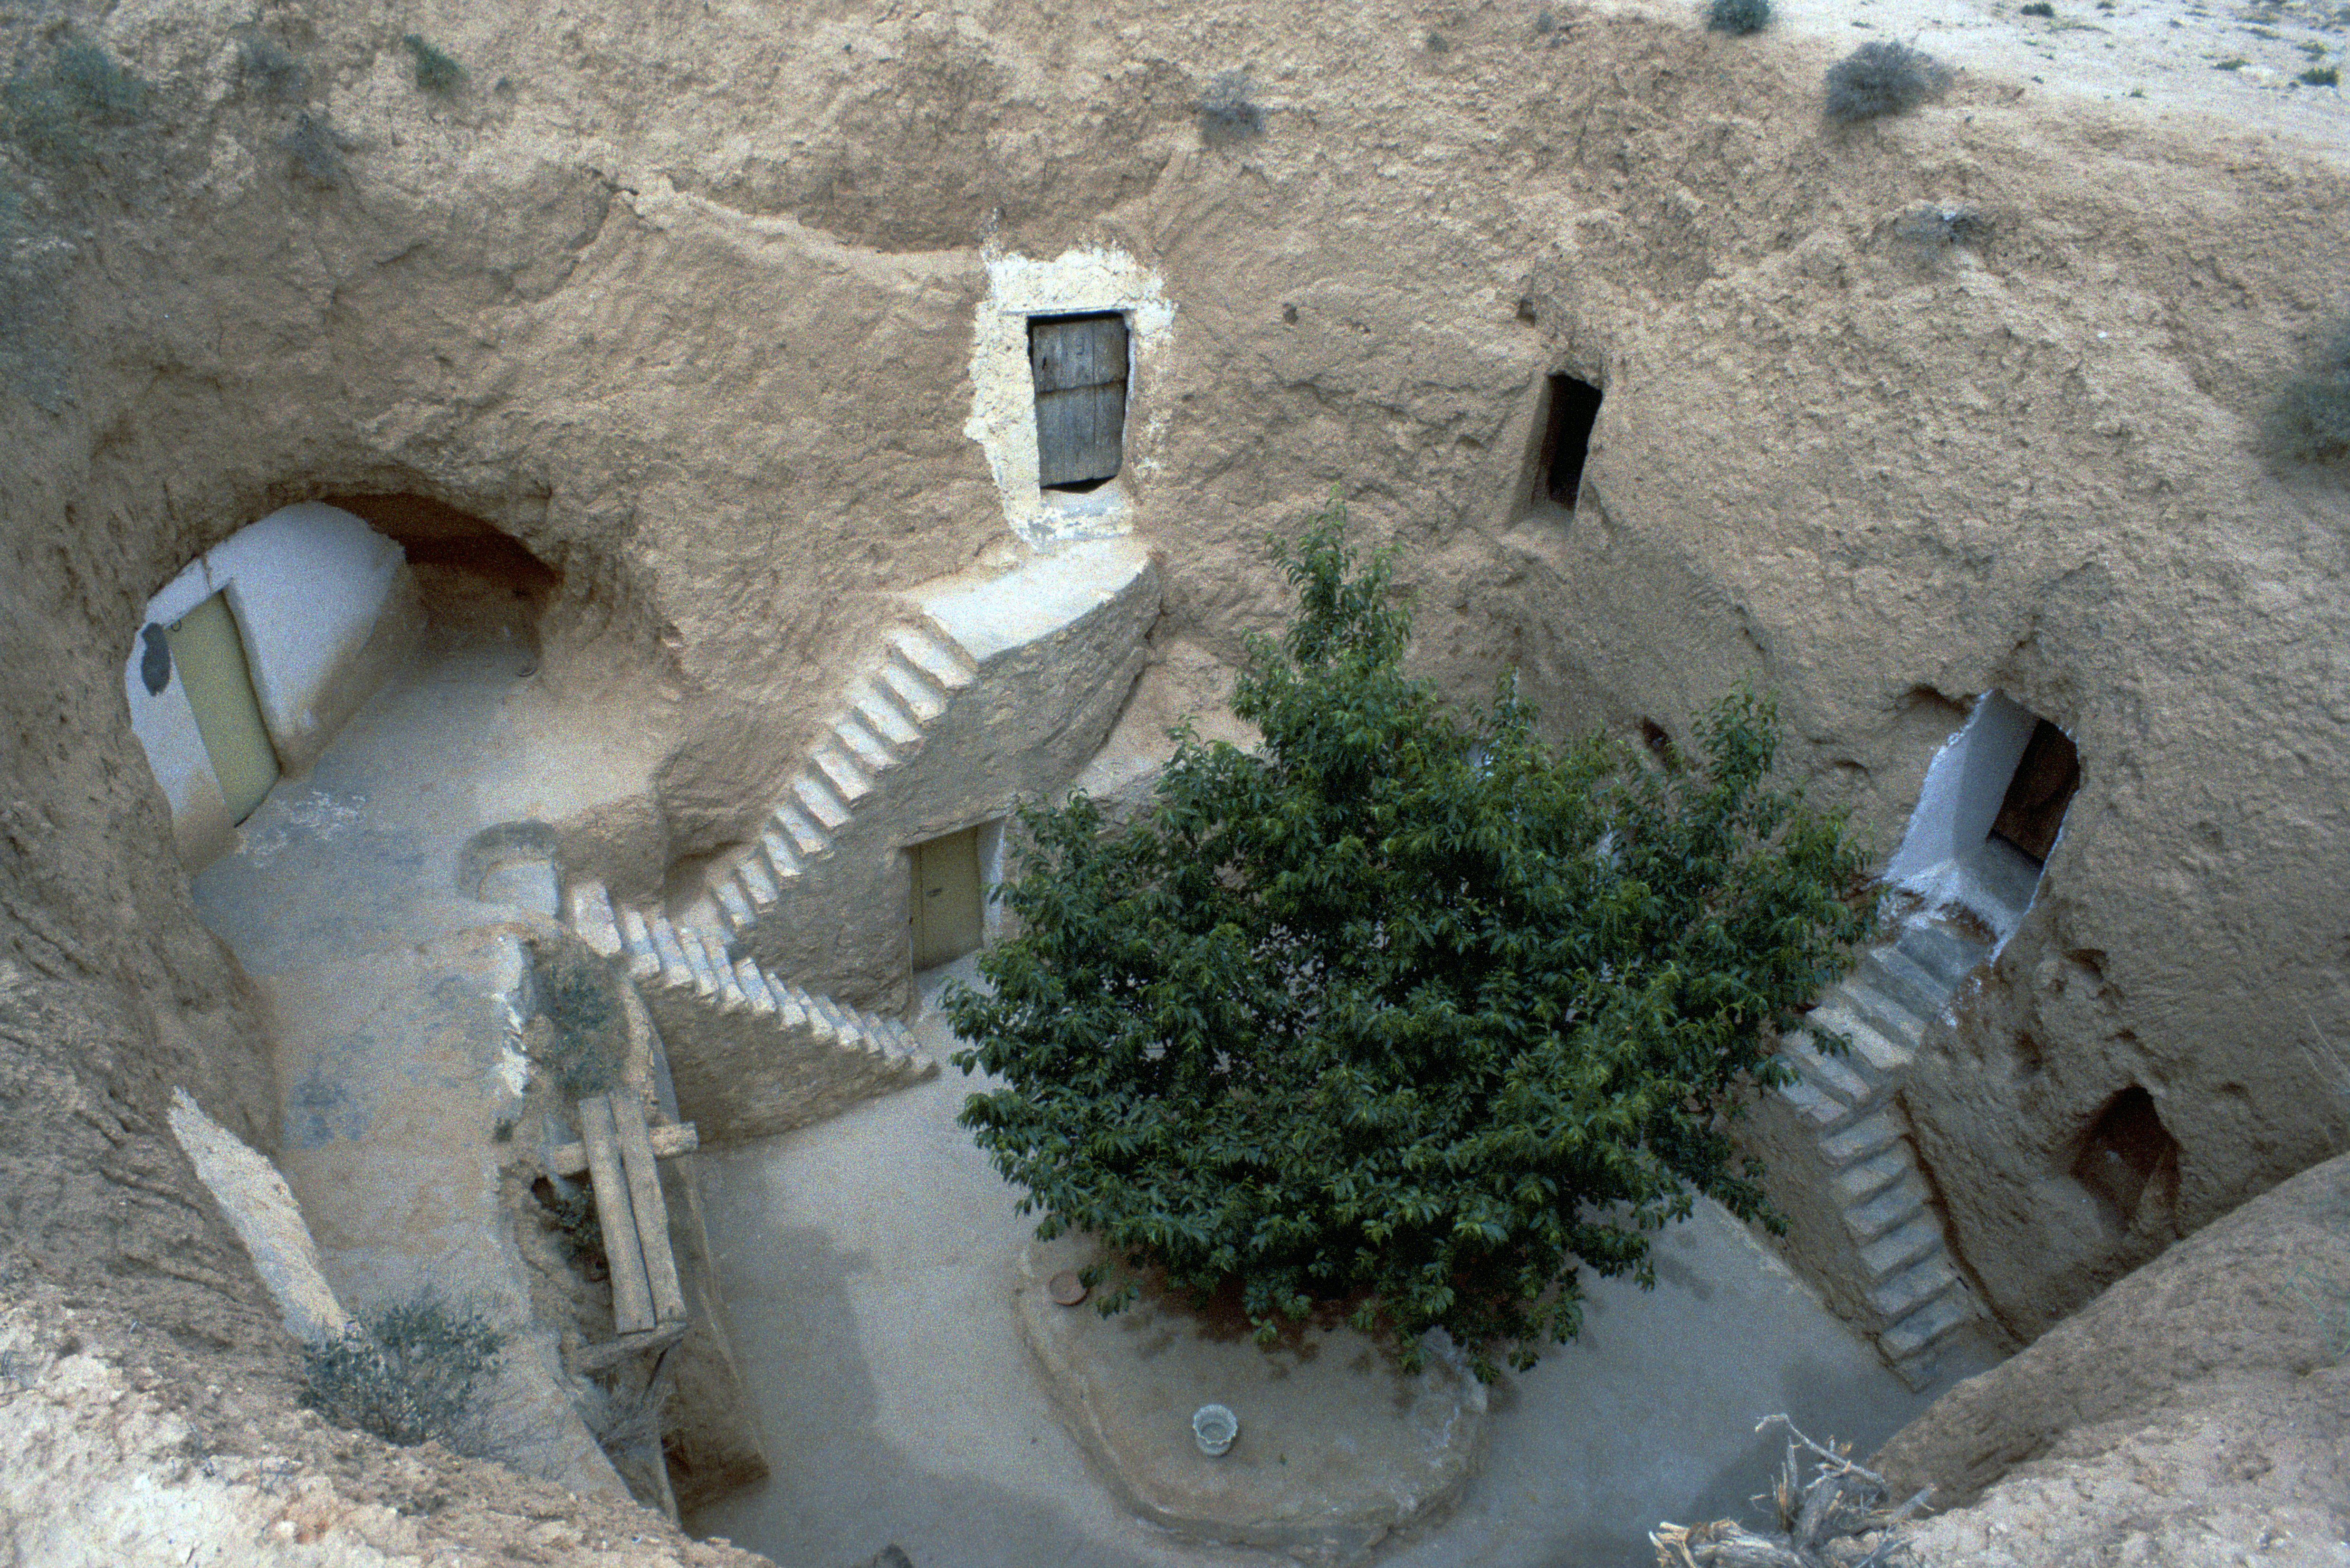 stairways, doors, and windows provide access to living spaces carved into the earth - a tree is in the center of the open pit community